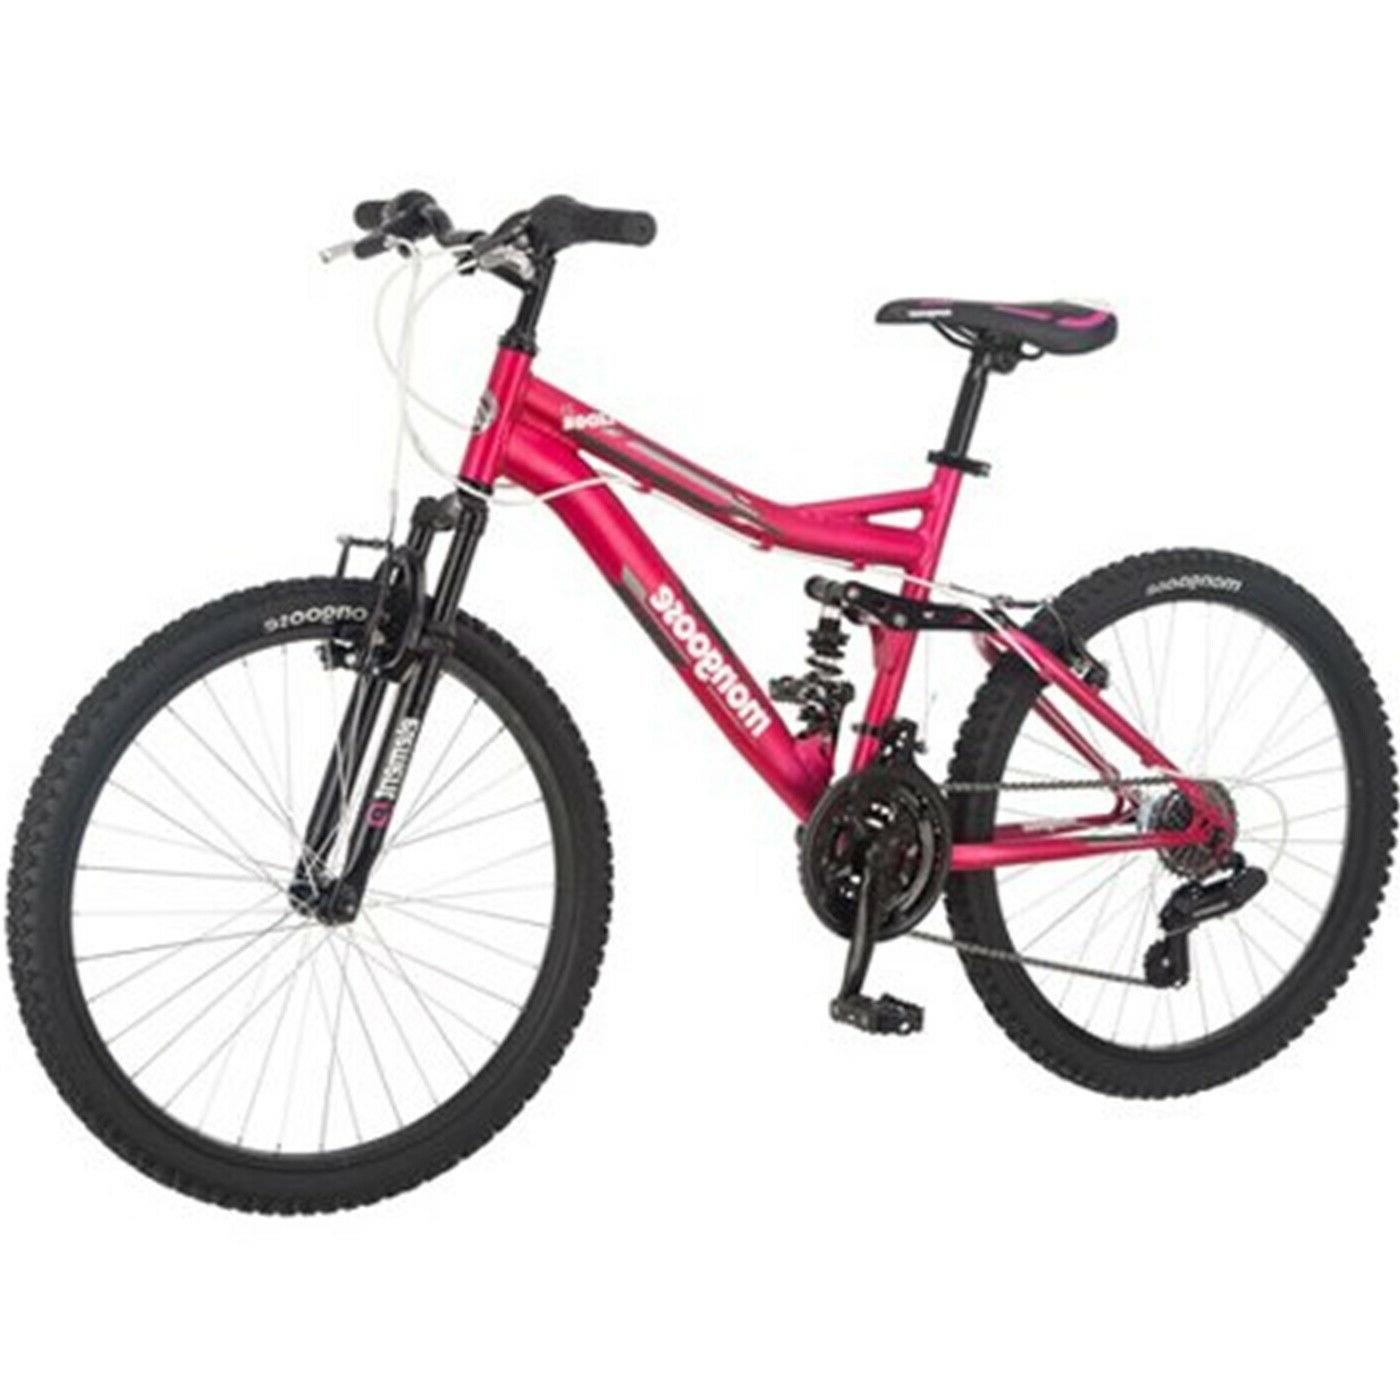 "24"" Mongoose Ledge 2.1 Girls Mountain Bike Pink Padded Seat"